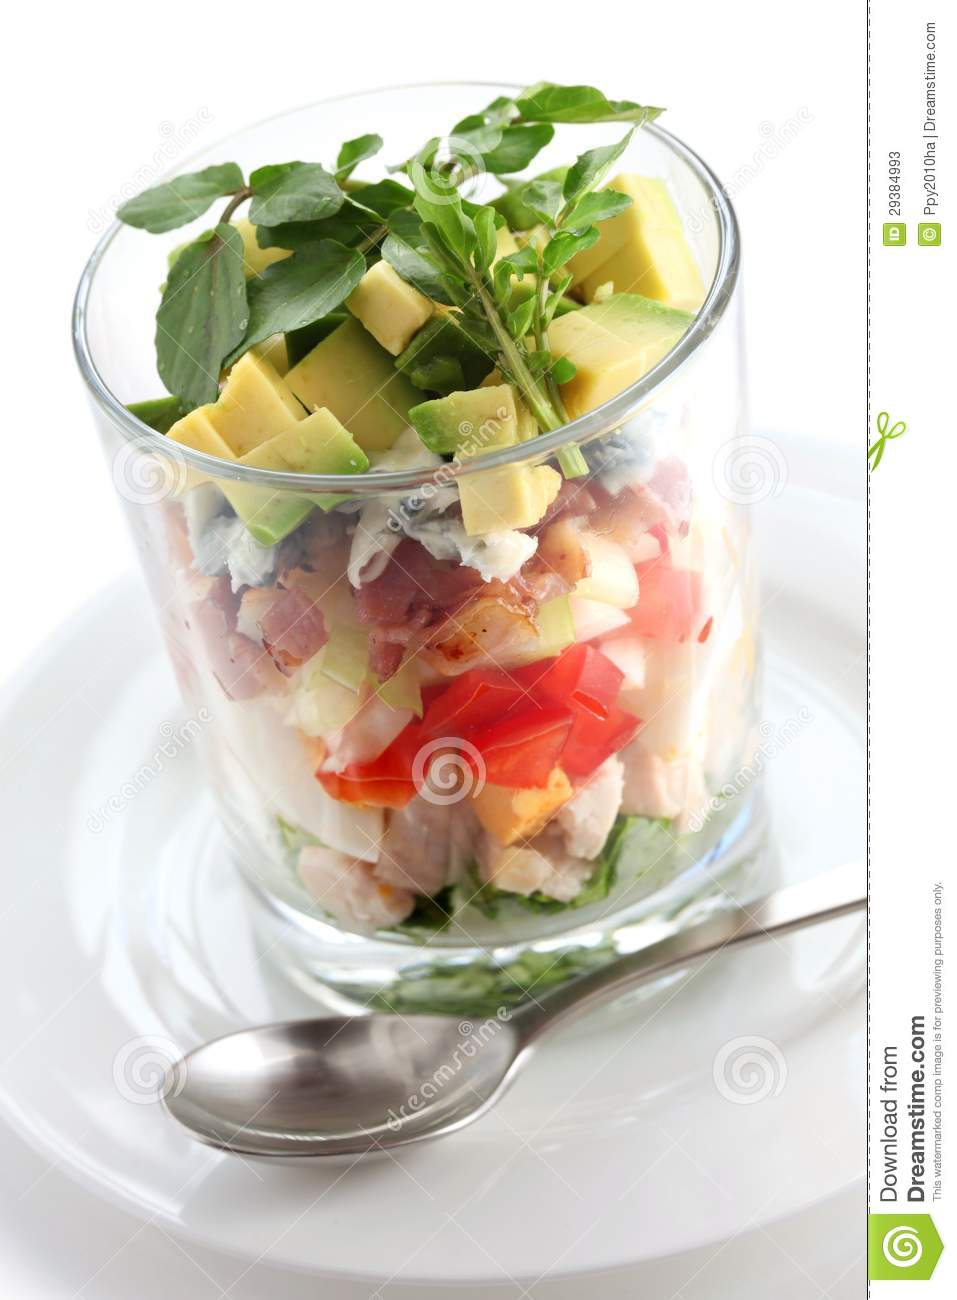 Layered Cobb Salad In A Glass Cup Stock Photos - Image: 29384993